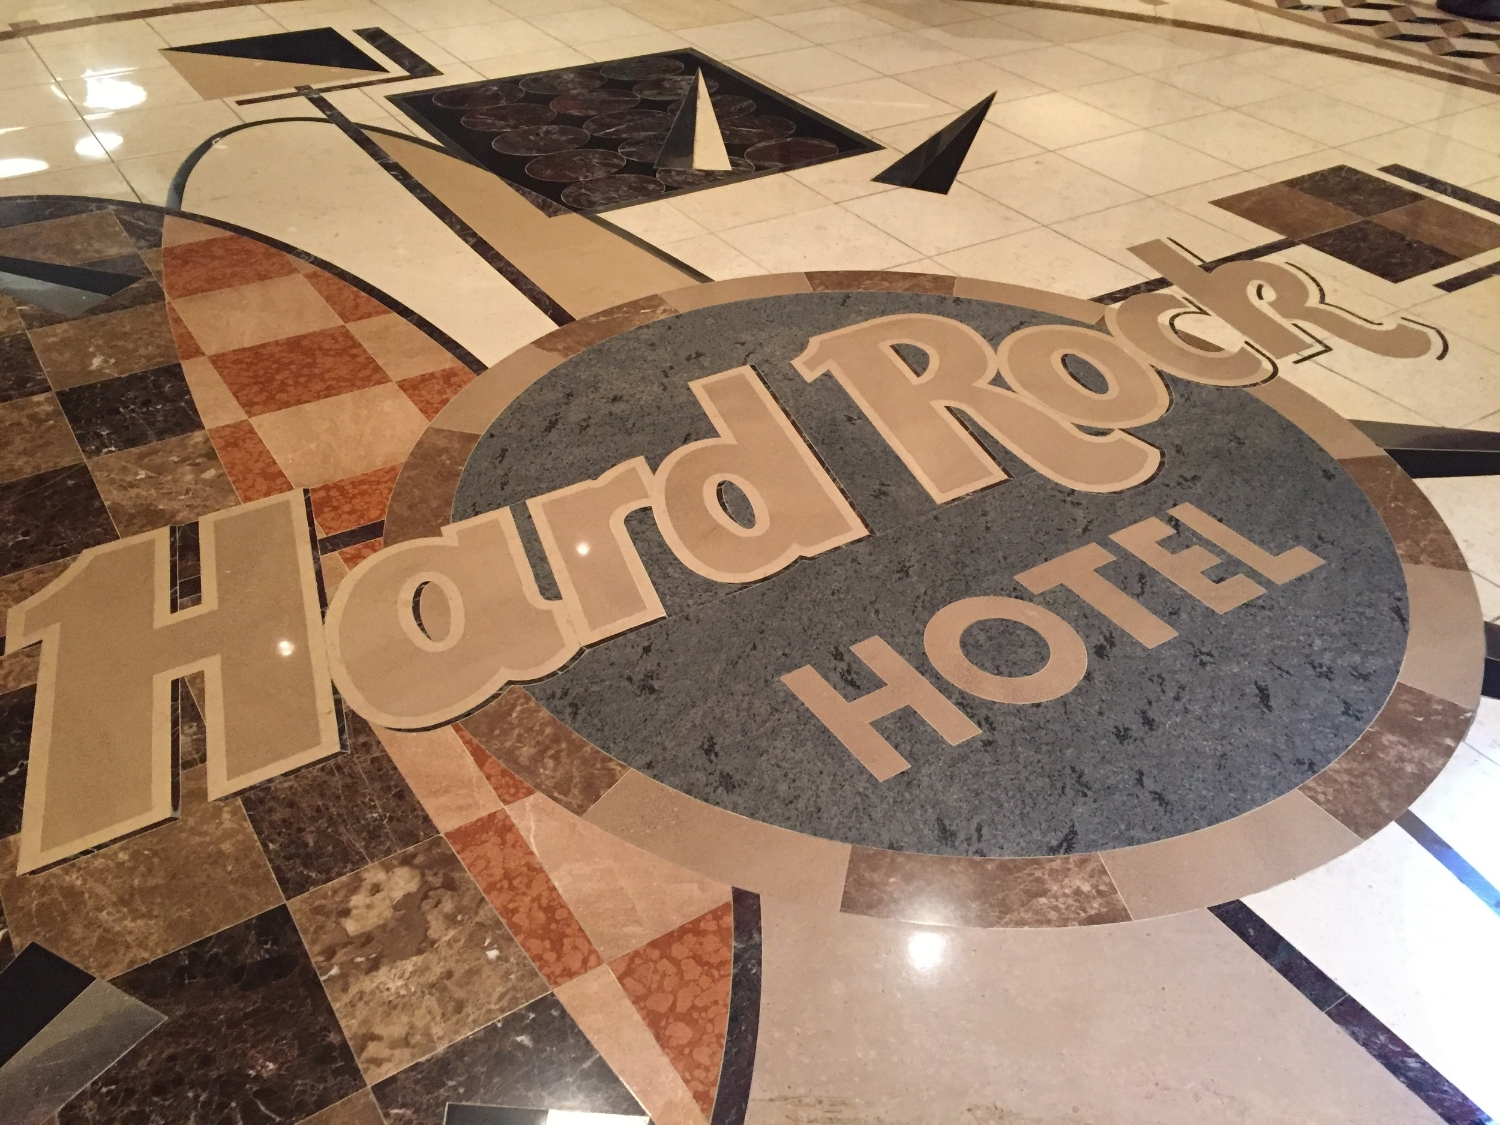 Hard Rock Hotel Logo on Entrance Floor